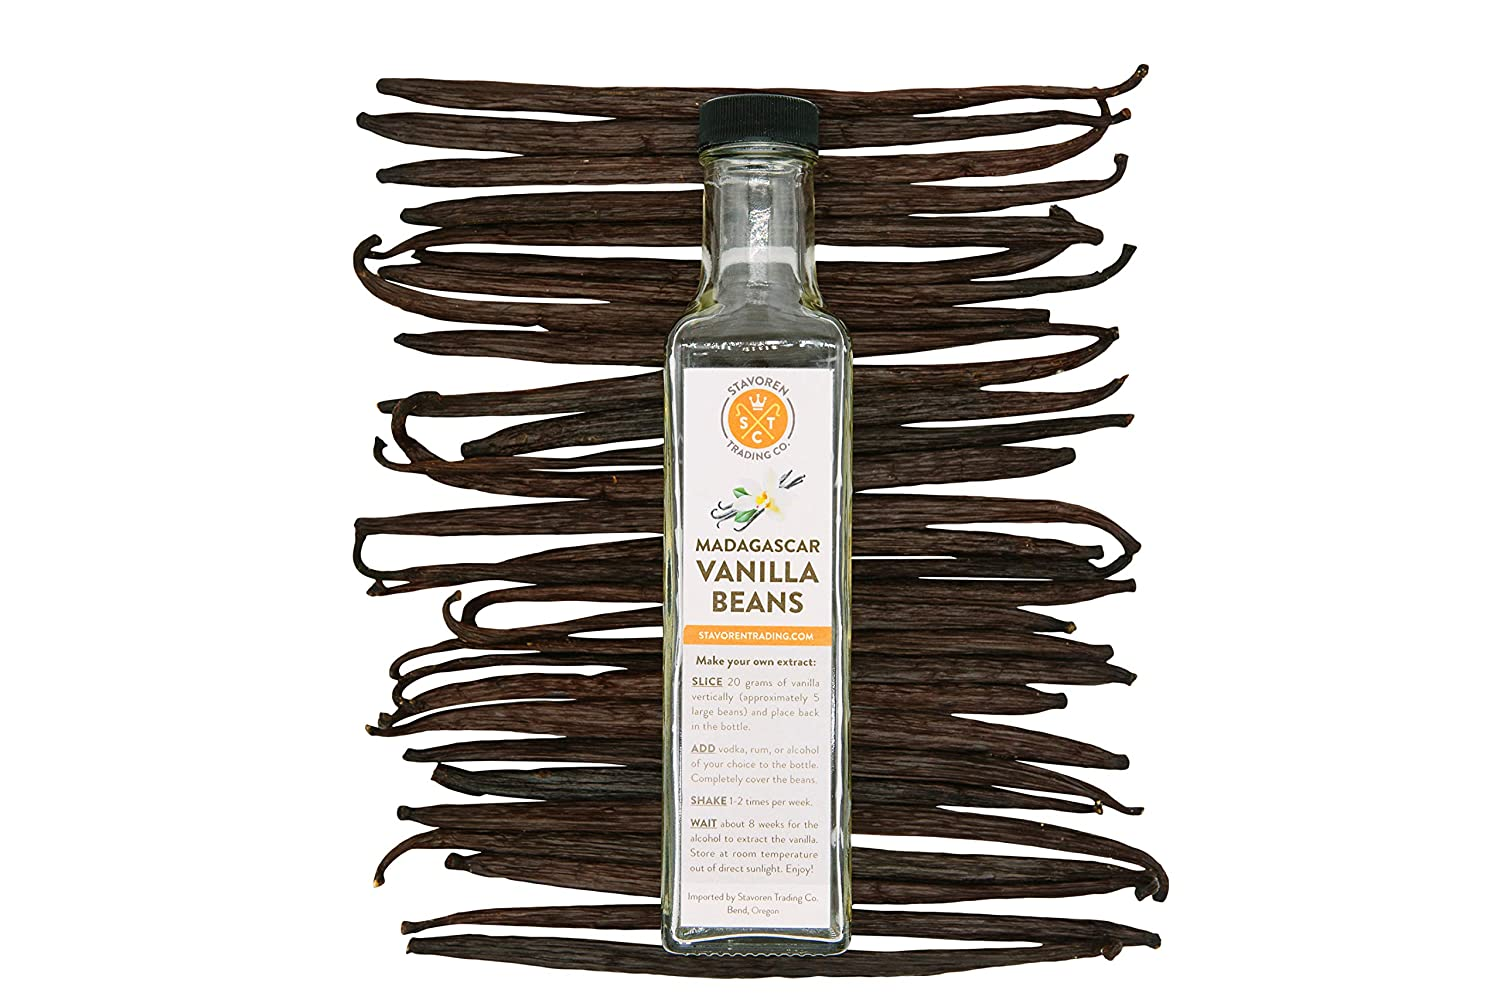 Stavoren Trading Co. 6 Lg Madagascar Bourbon Vanilla Beans for Pure Vanilla Extract, Instructions, Glass Bottle & Stopper Included, Beans are 5-6 inches long and are sealed & protected. Makes 8 oz (6)